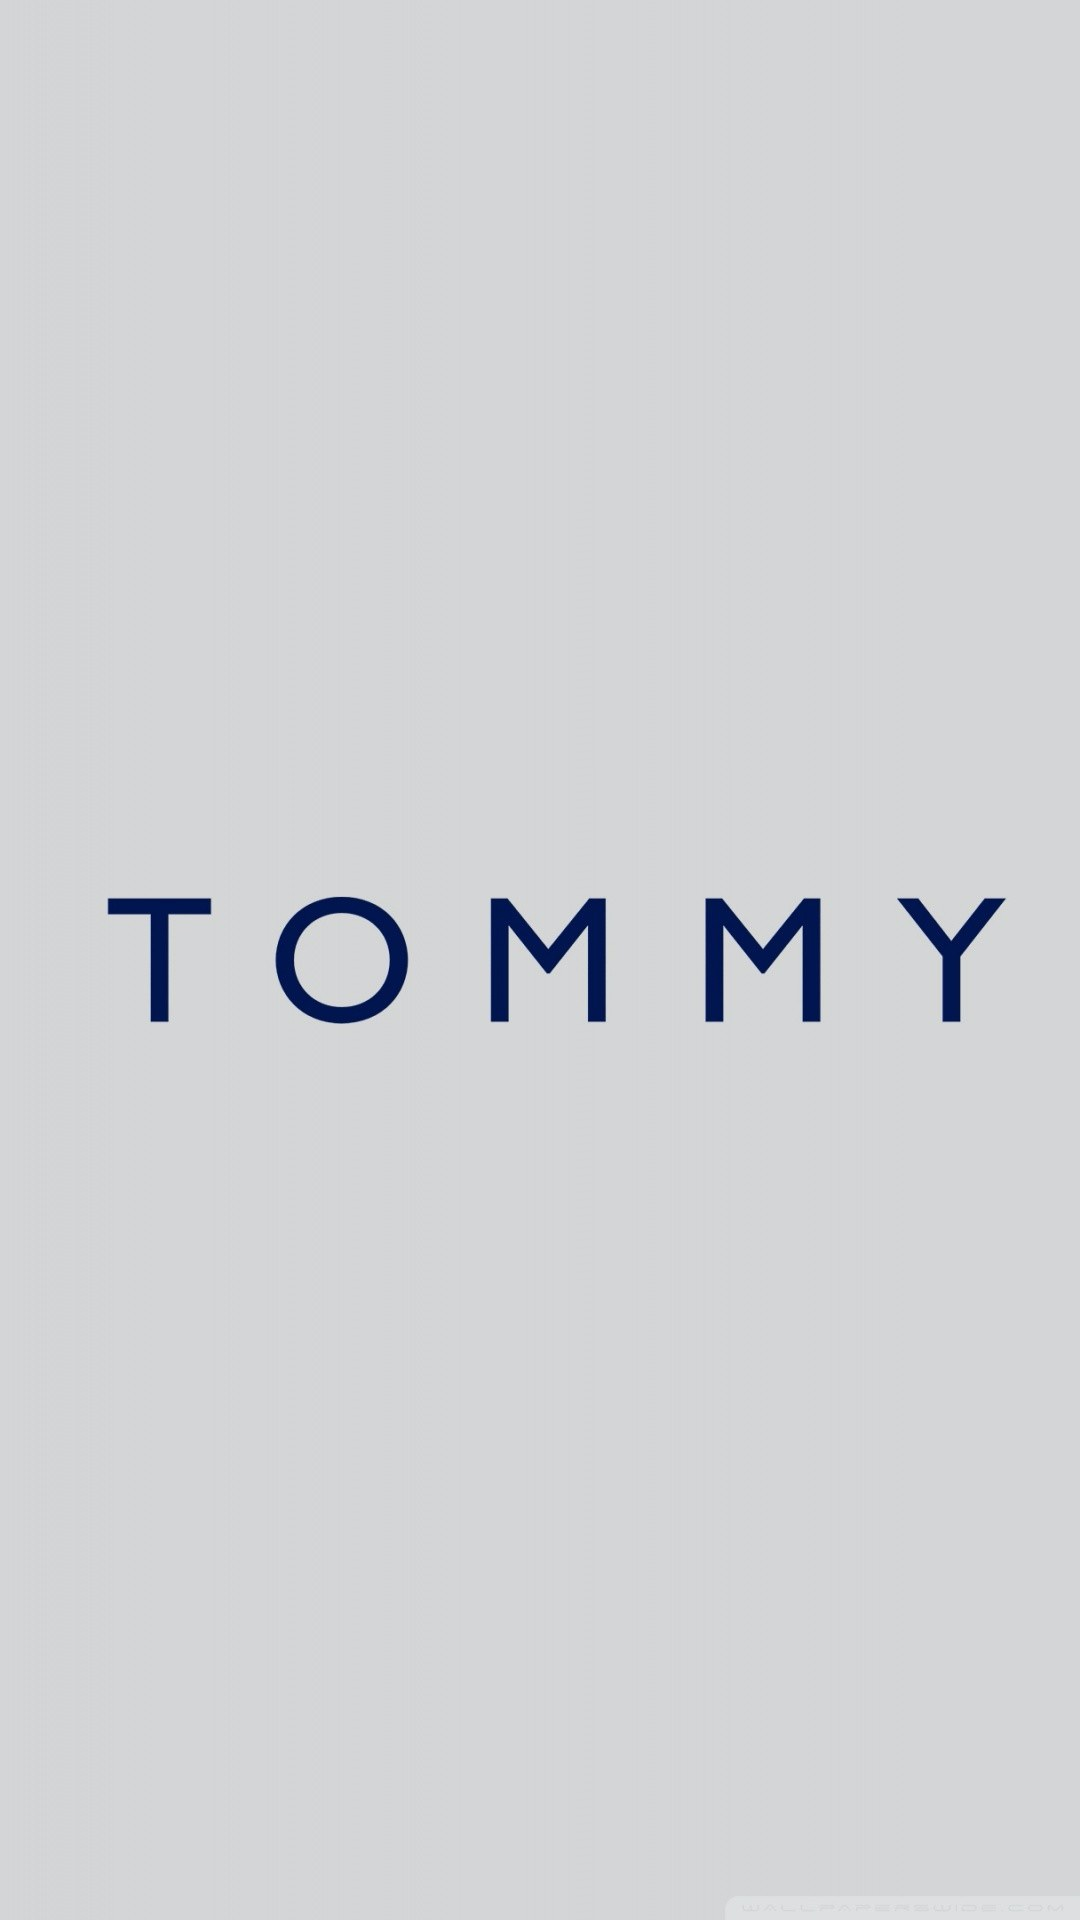 tommyhilfiger02 - TOMMY HILFIGER/トミー・ヒルフィガーの高画質スマホ壁紙20枚 [iPhone&Androidに対応]